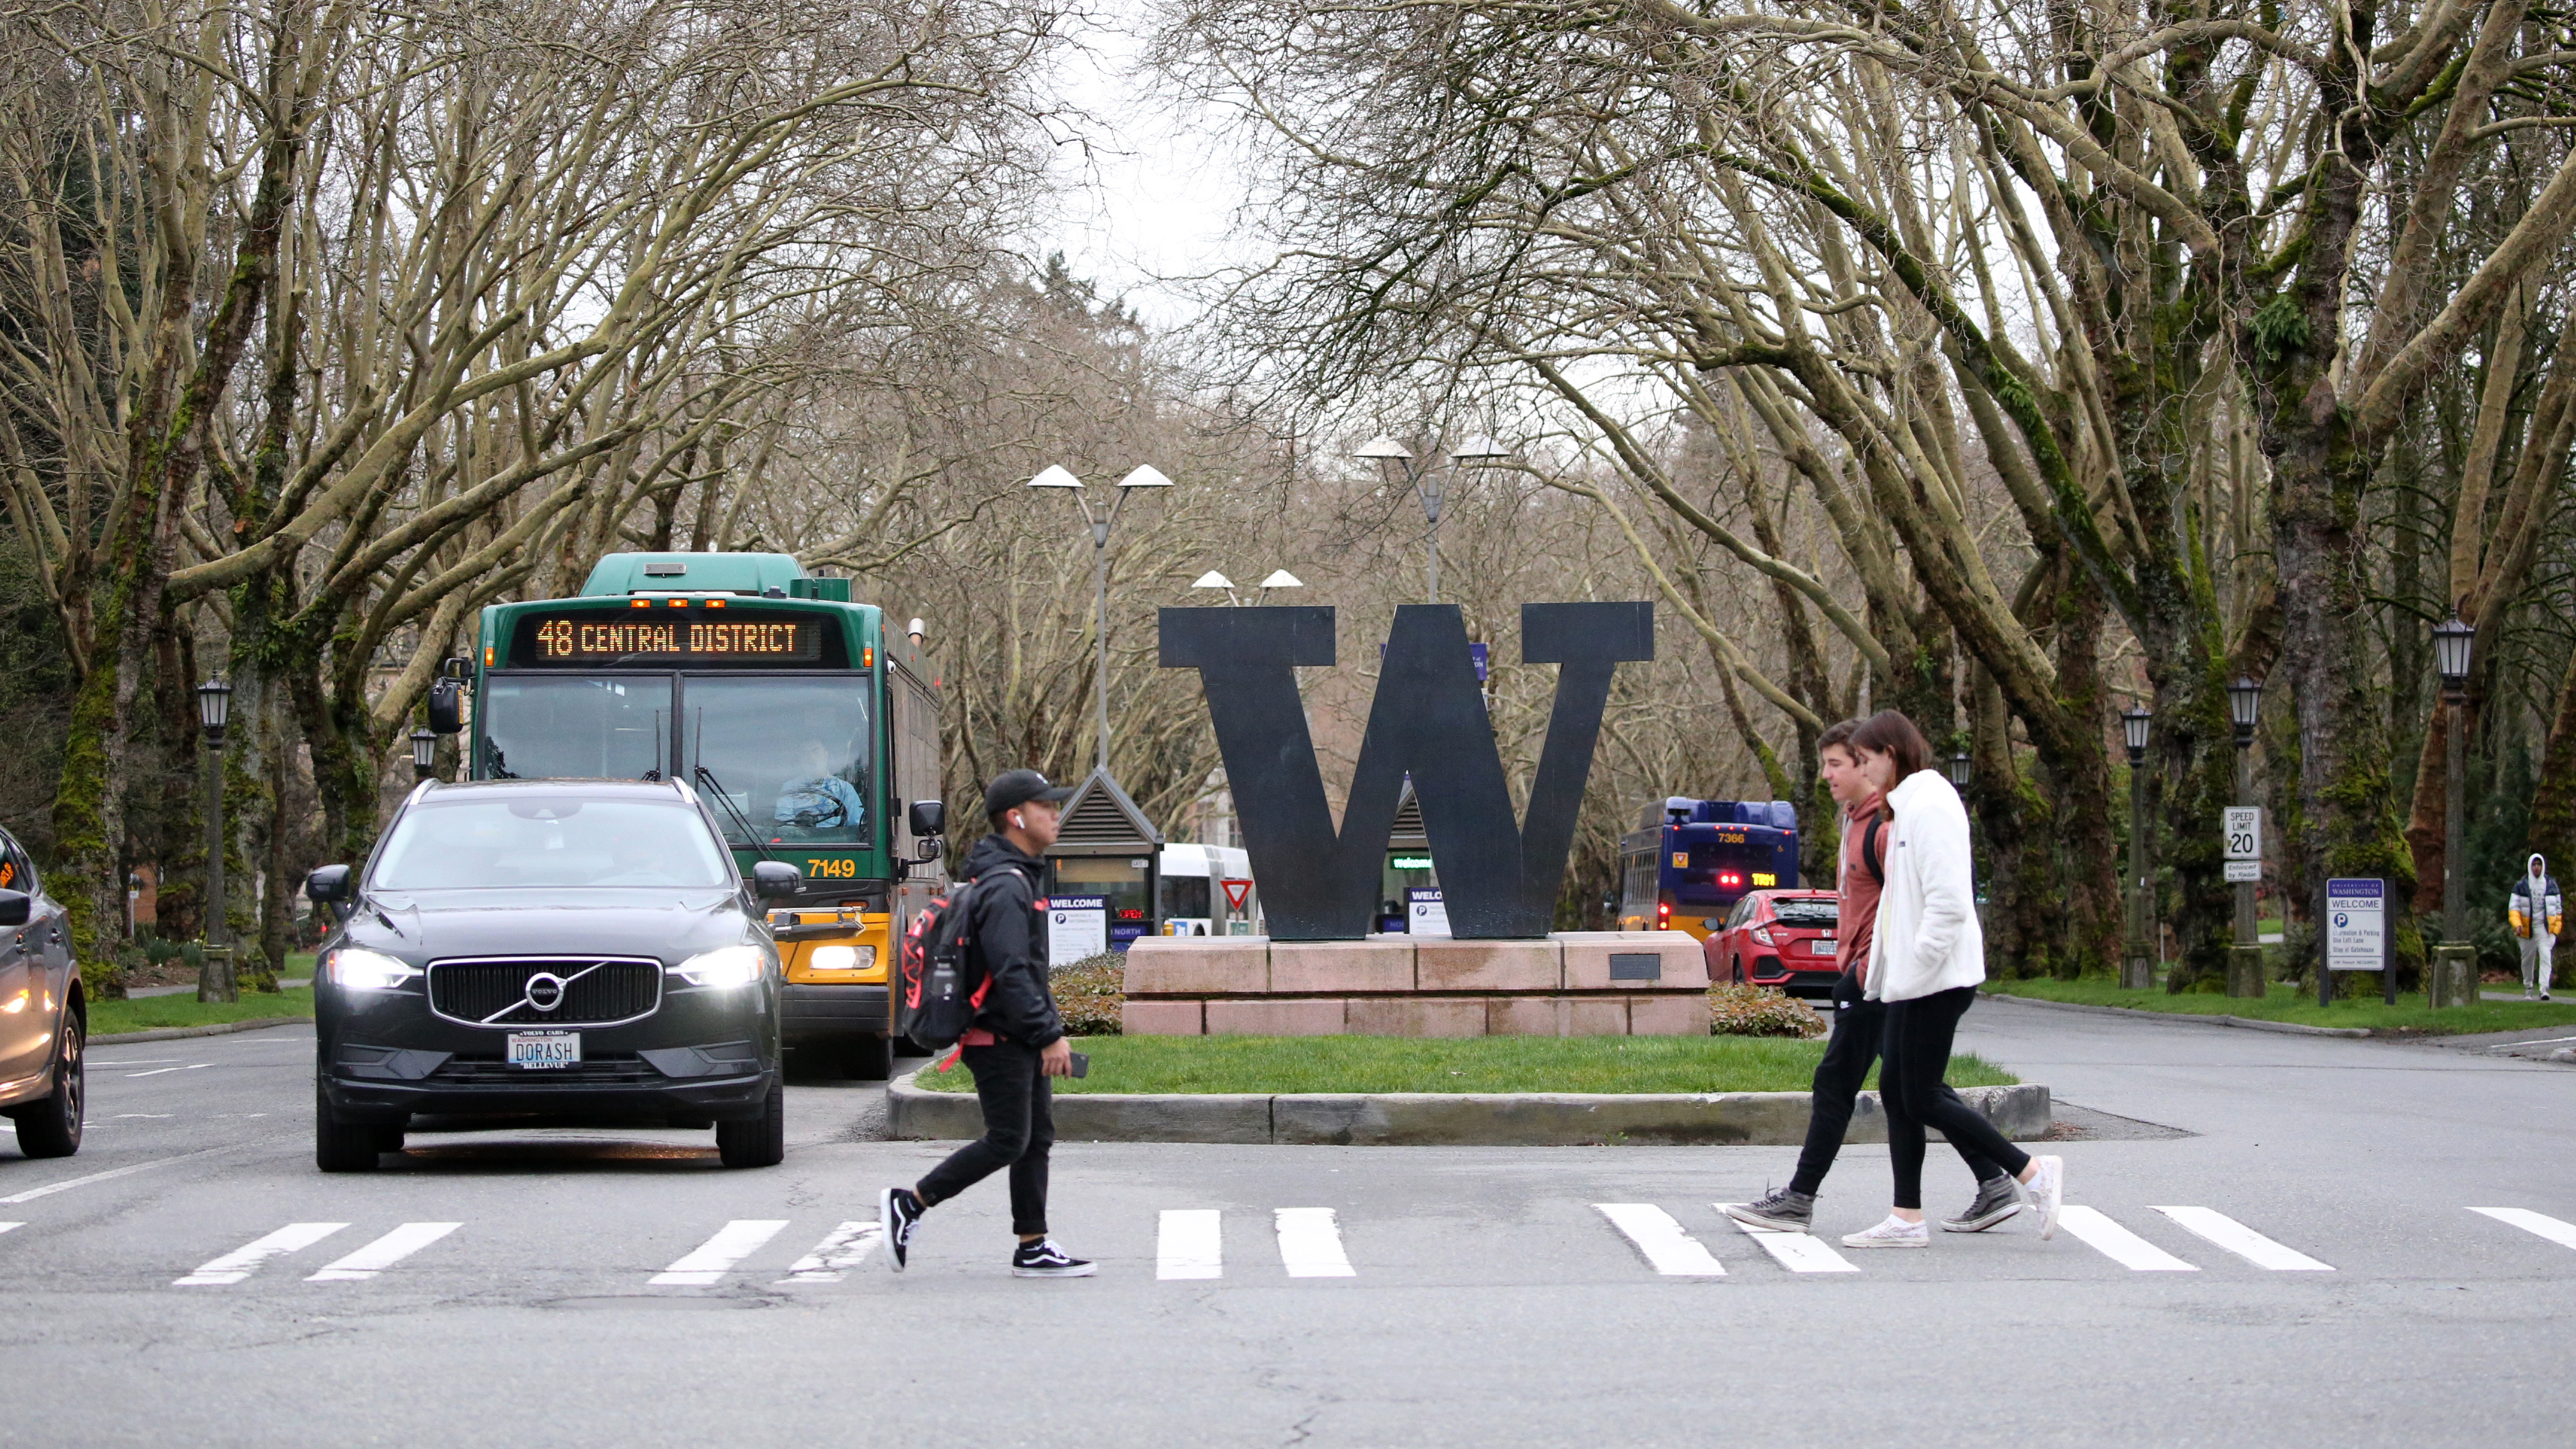 Students walk around the University of Washington campus for the last day of in-person classes on March 6 in Seattle. The university closed on Monday as a precaution against coronavirus.